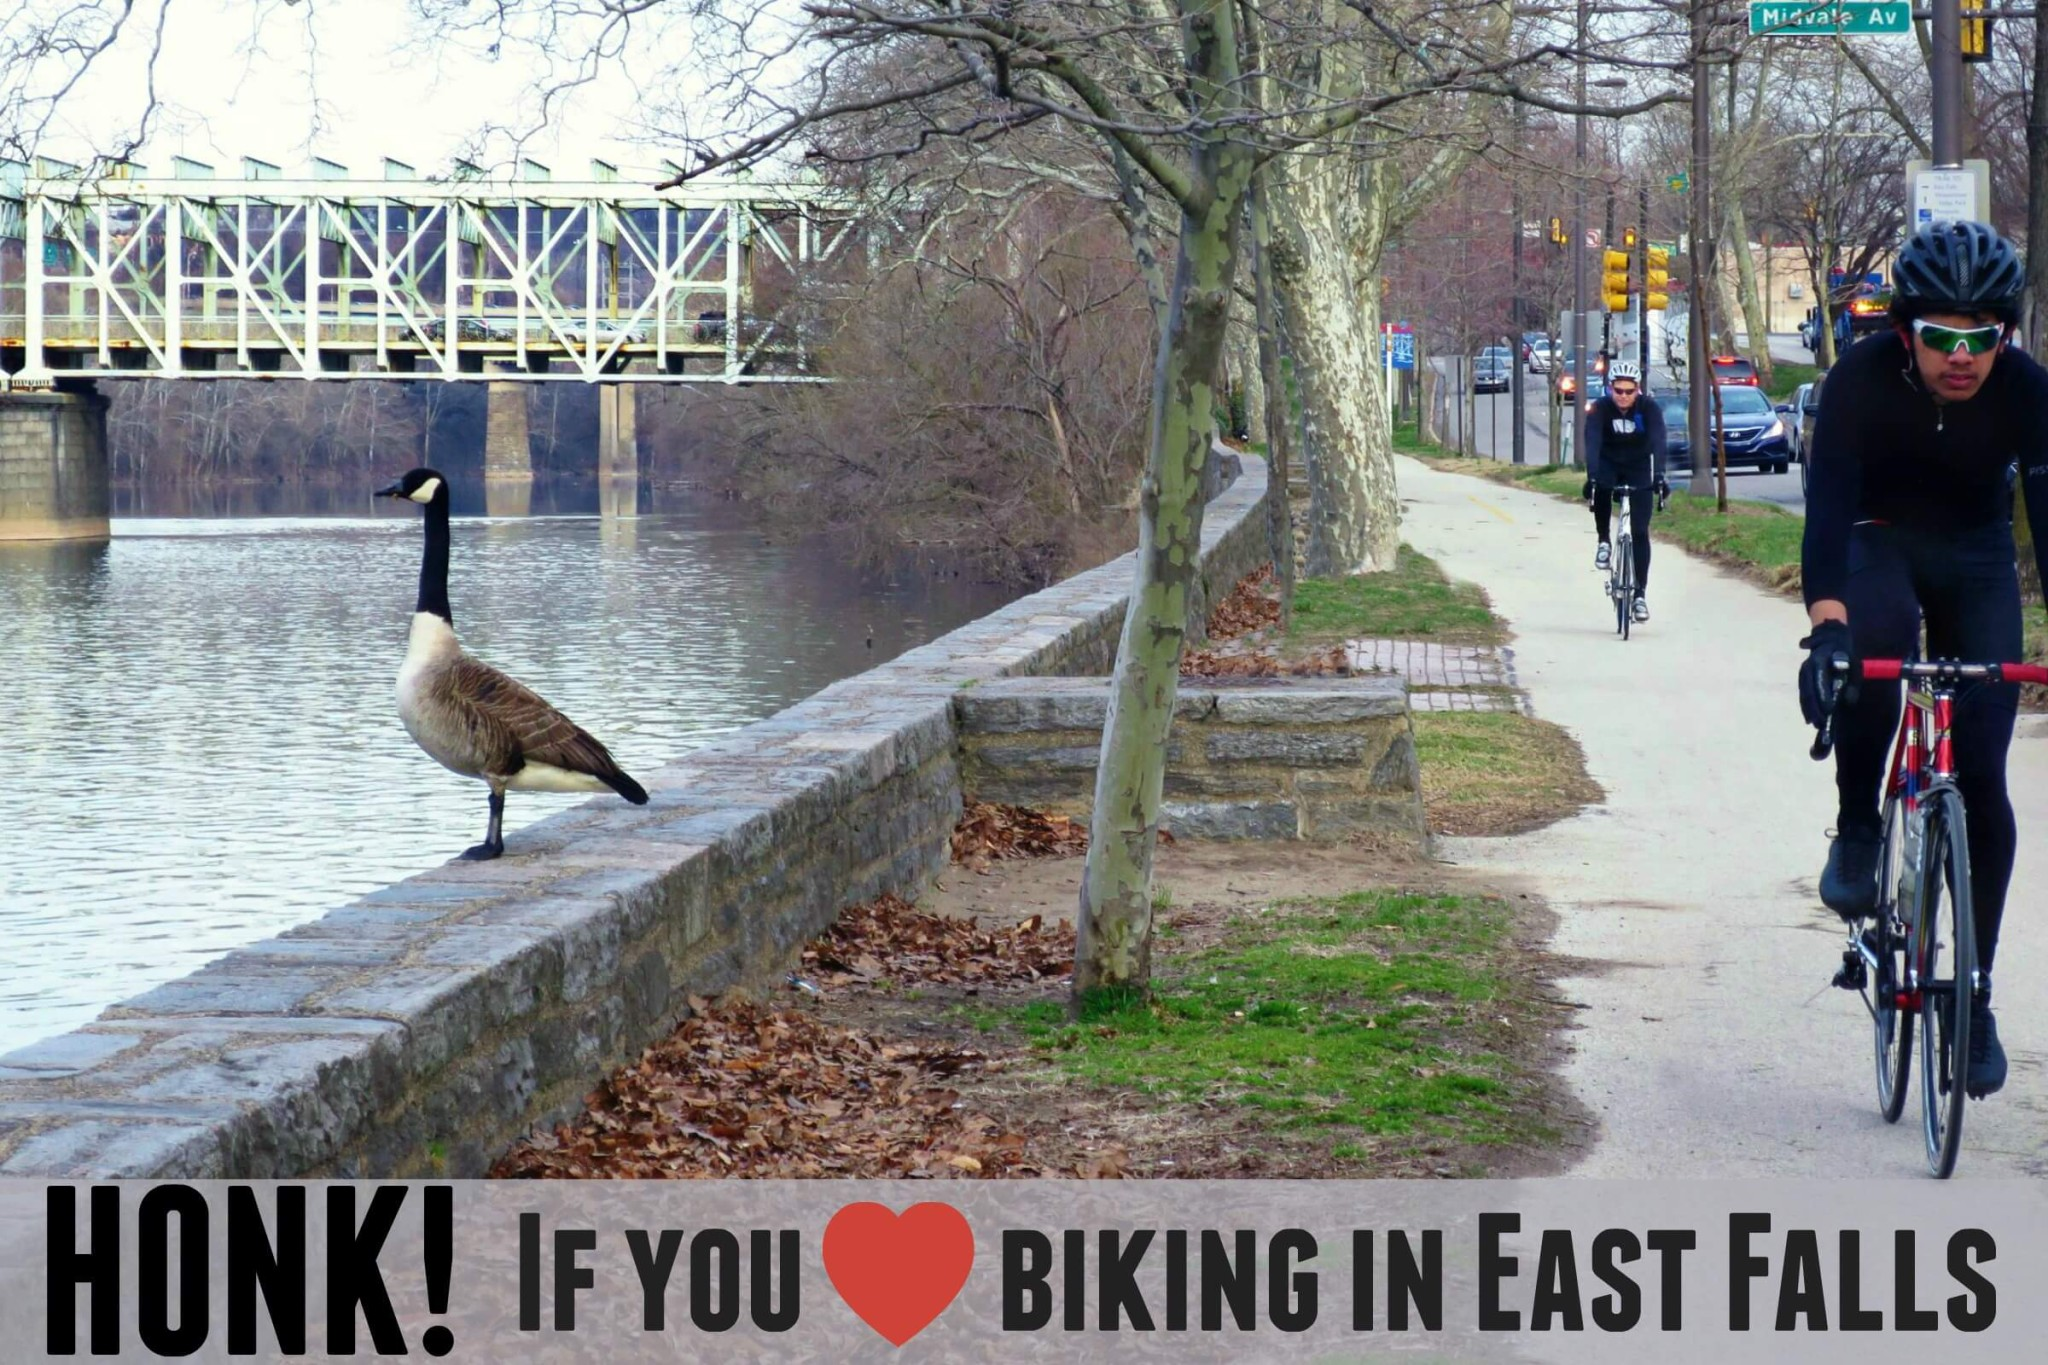 EastFallsLocal Honk if you love biking in east falls